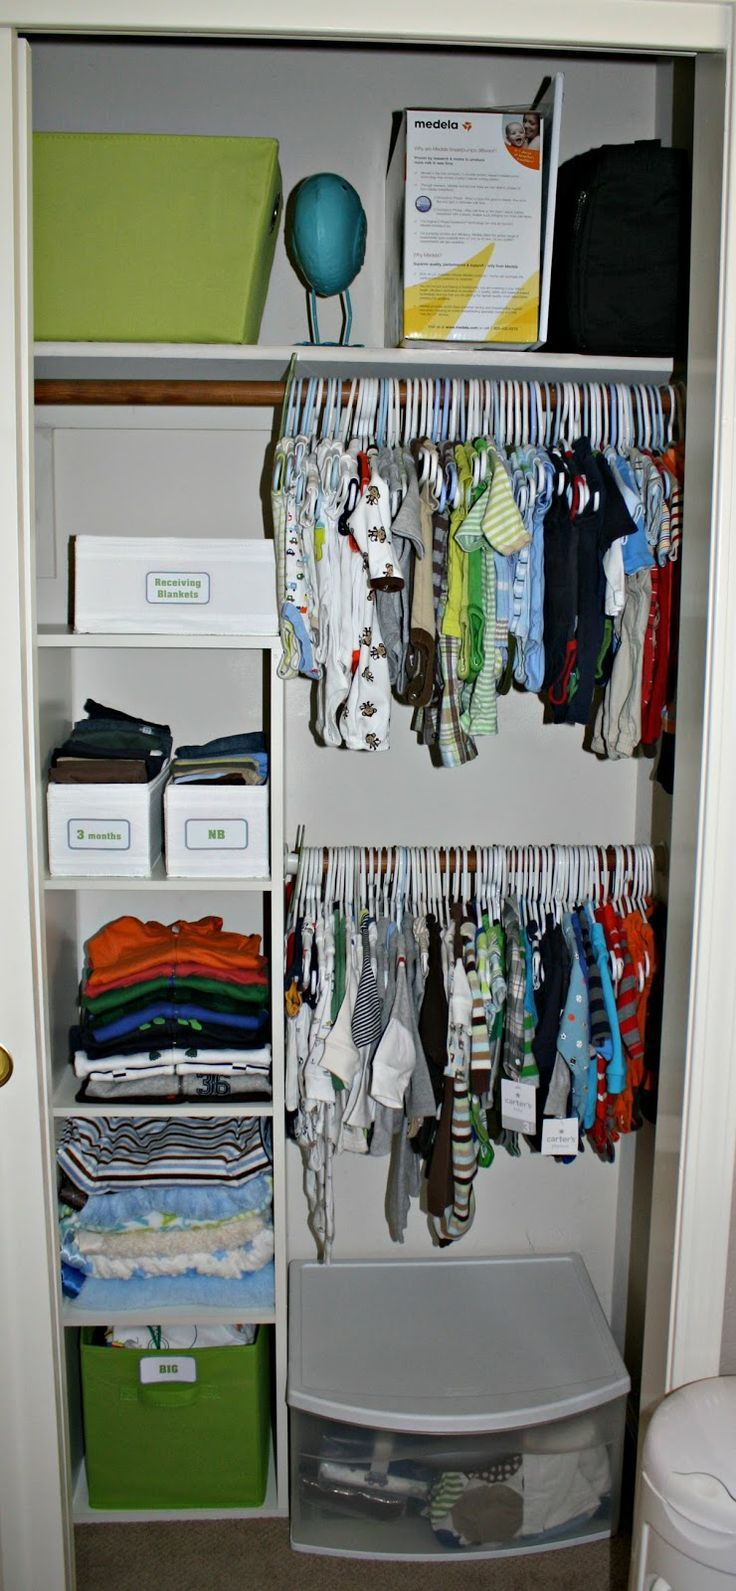 organiser organizers size cloth stylish of full clothes shelf organization close premade bins containers organizer cupboard storage solutions custom hanging for installation closets in coat closet systems shelves walk